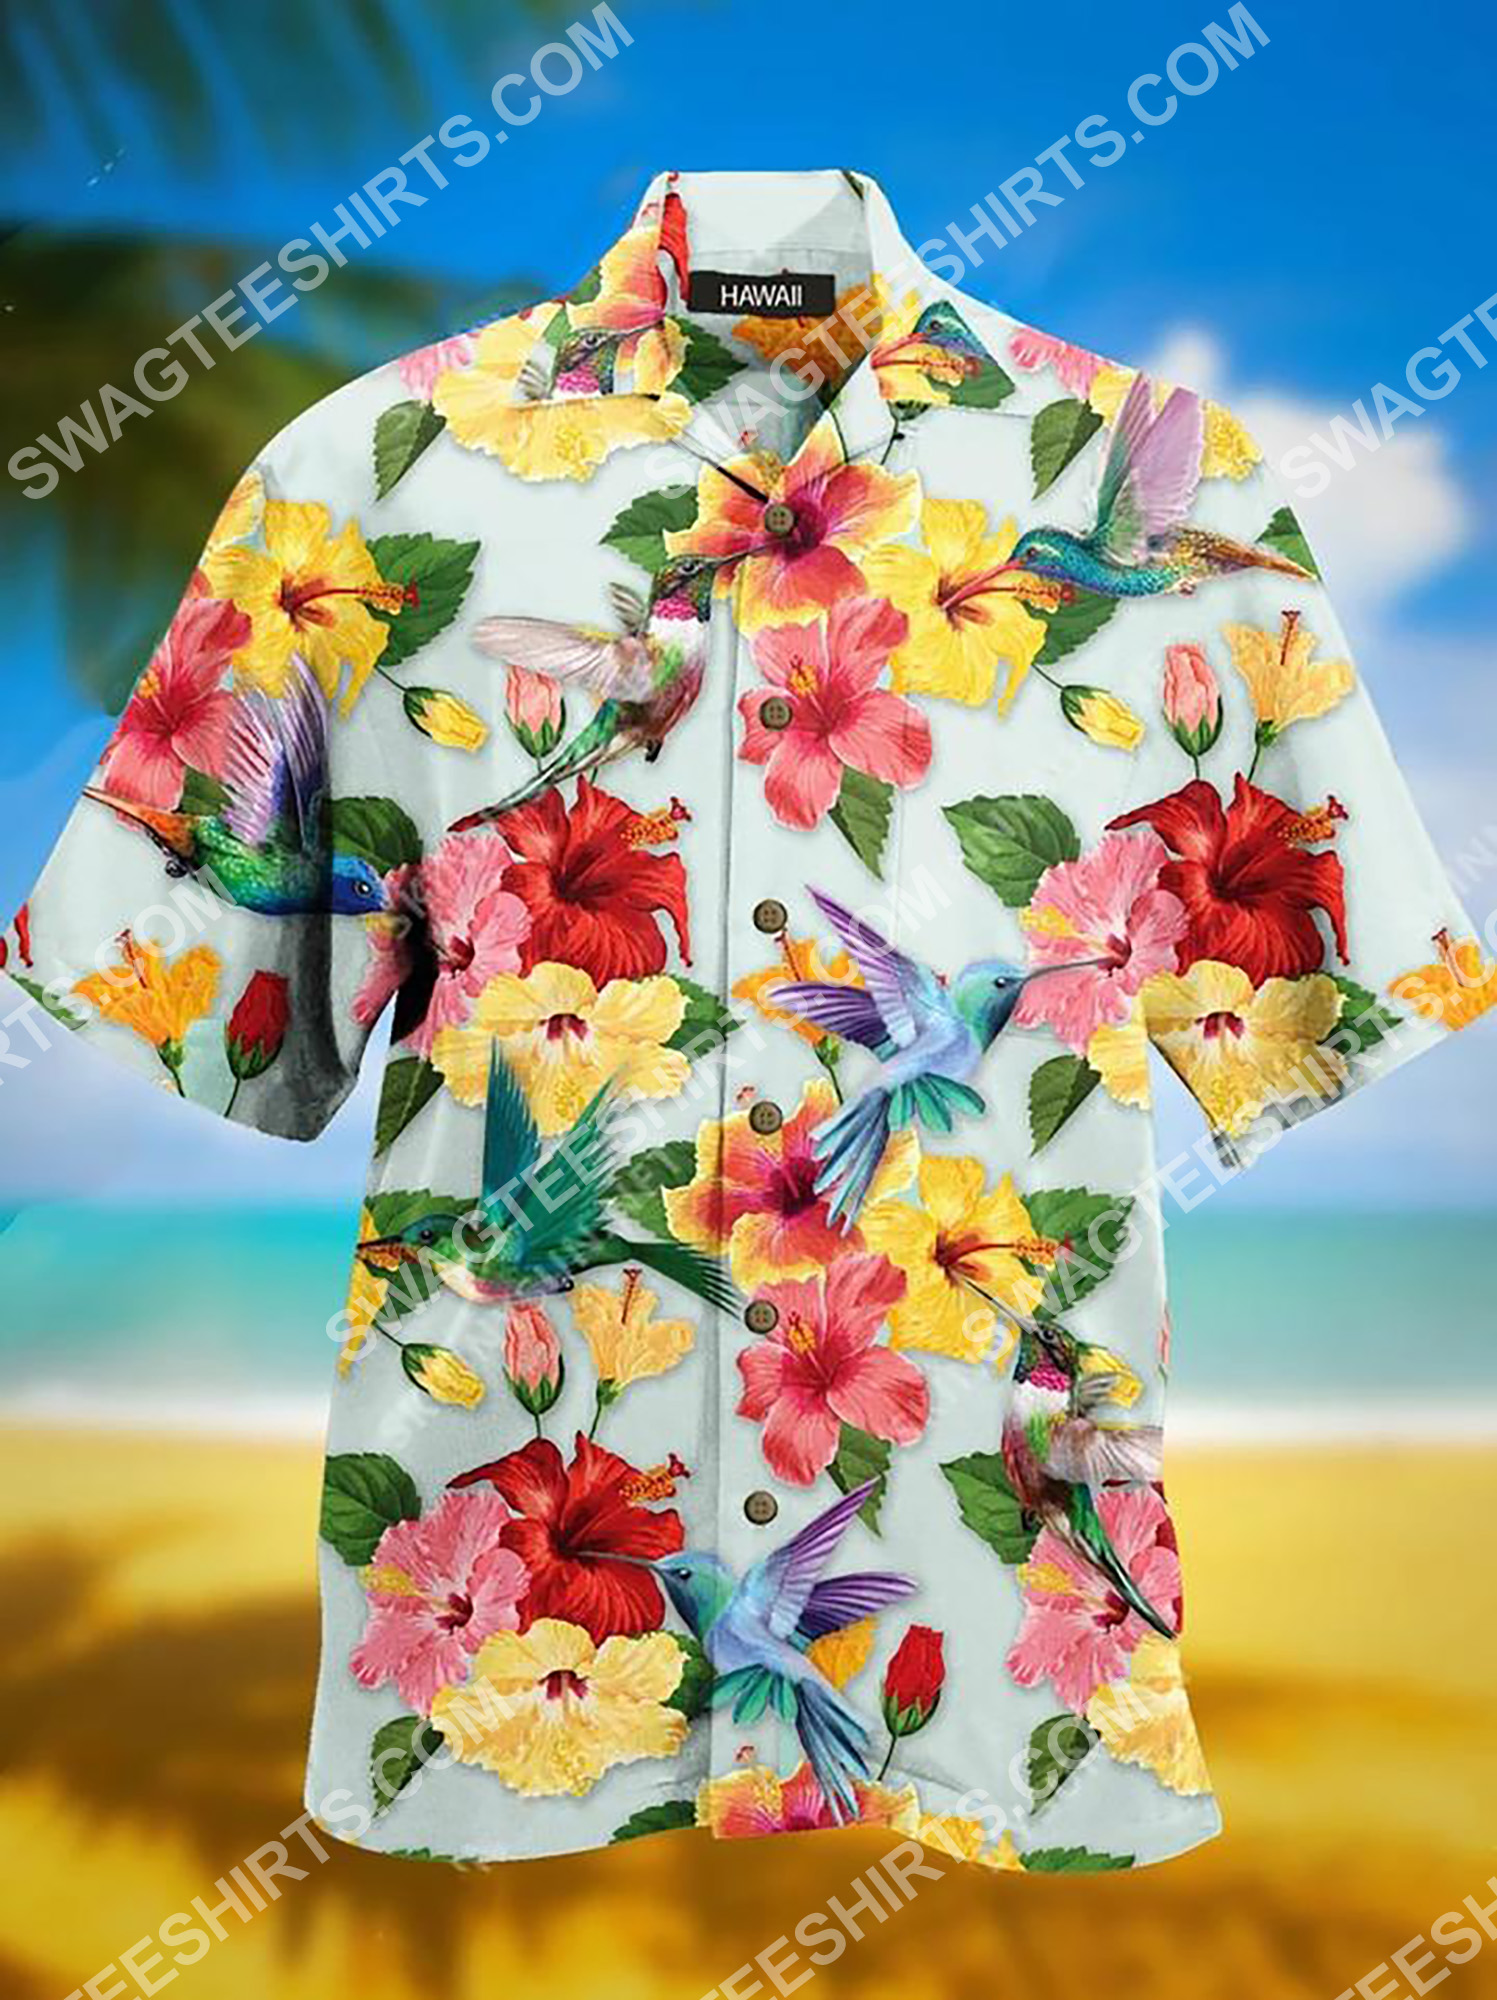 [Top-selling] tropical flower and bird all over printing hawaiian shirt - maria